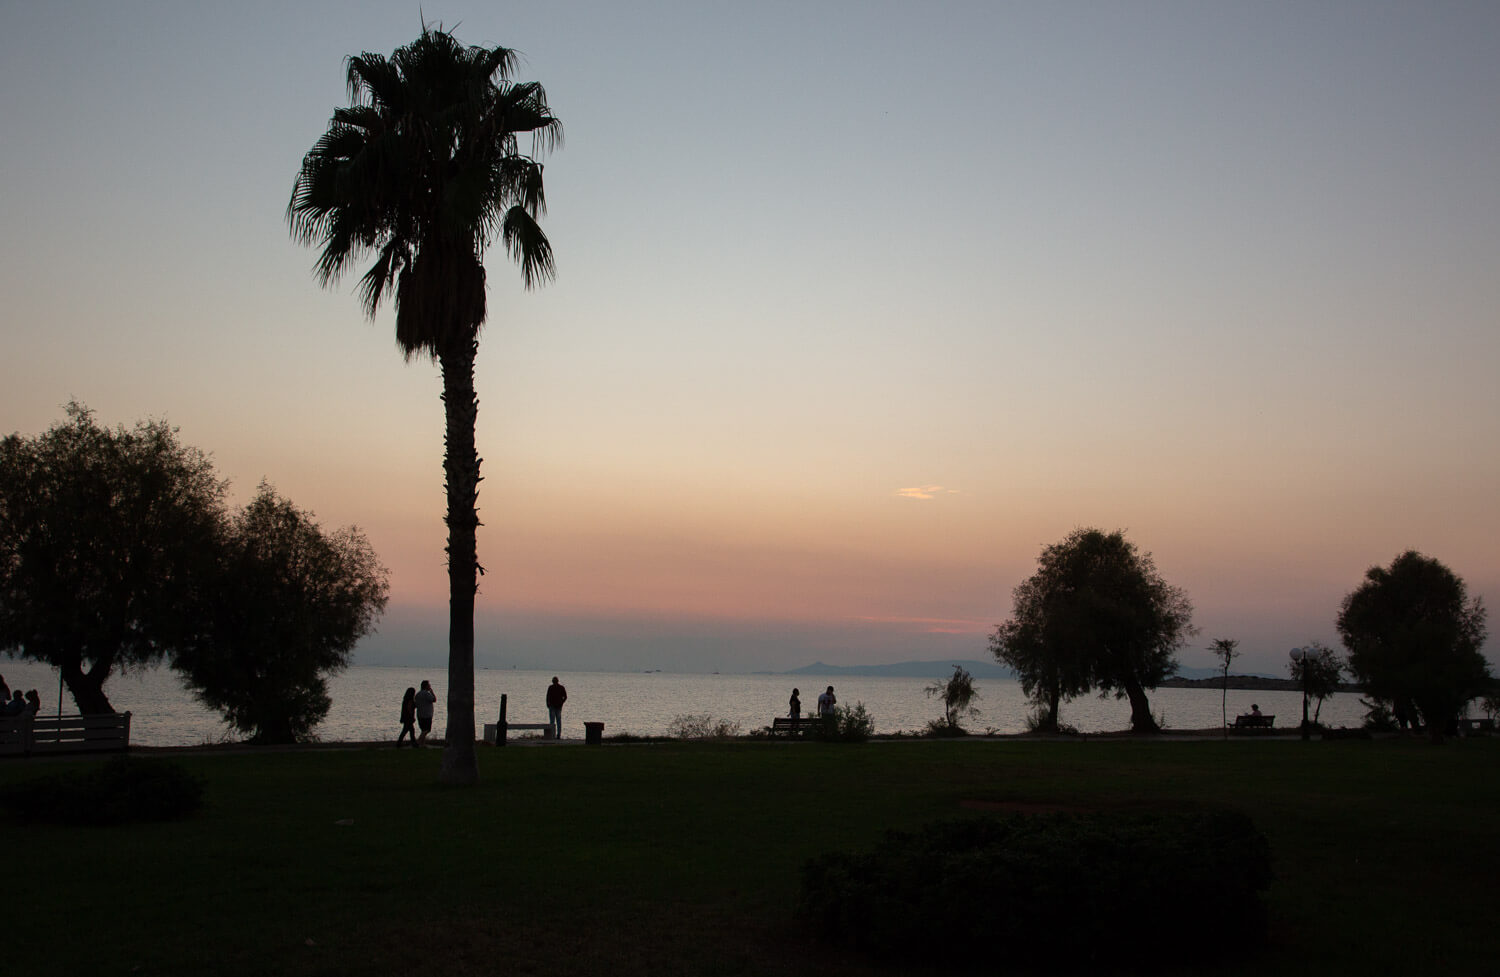 Voula seaside at sunset - Athens Riviera